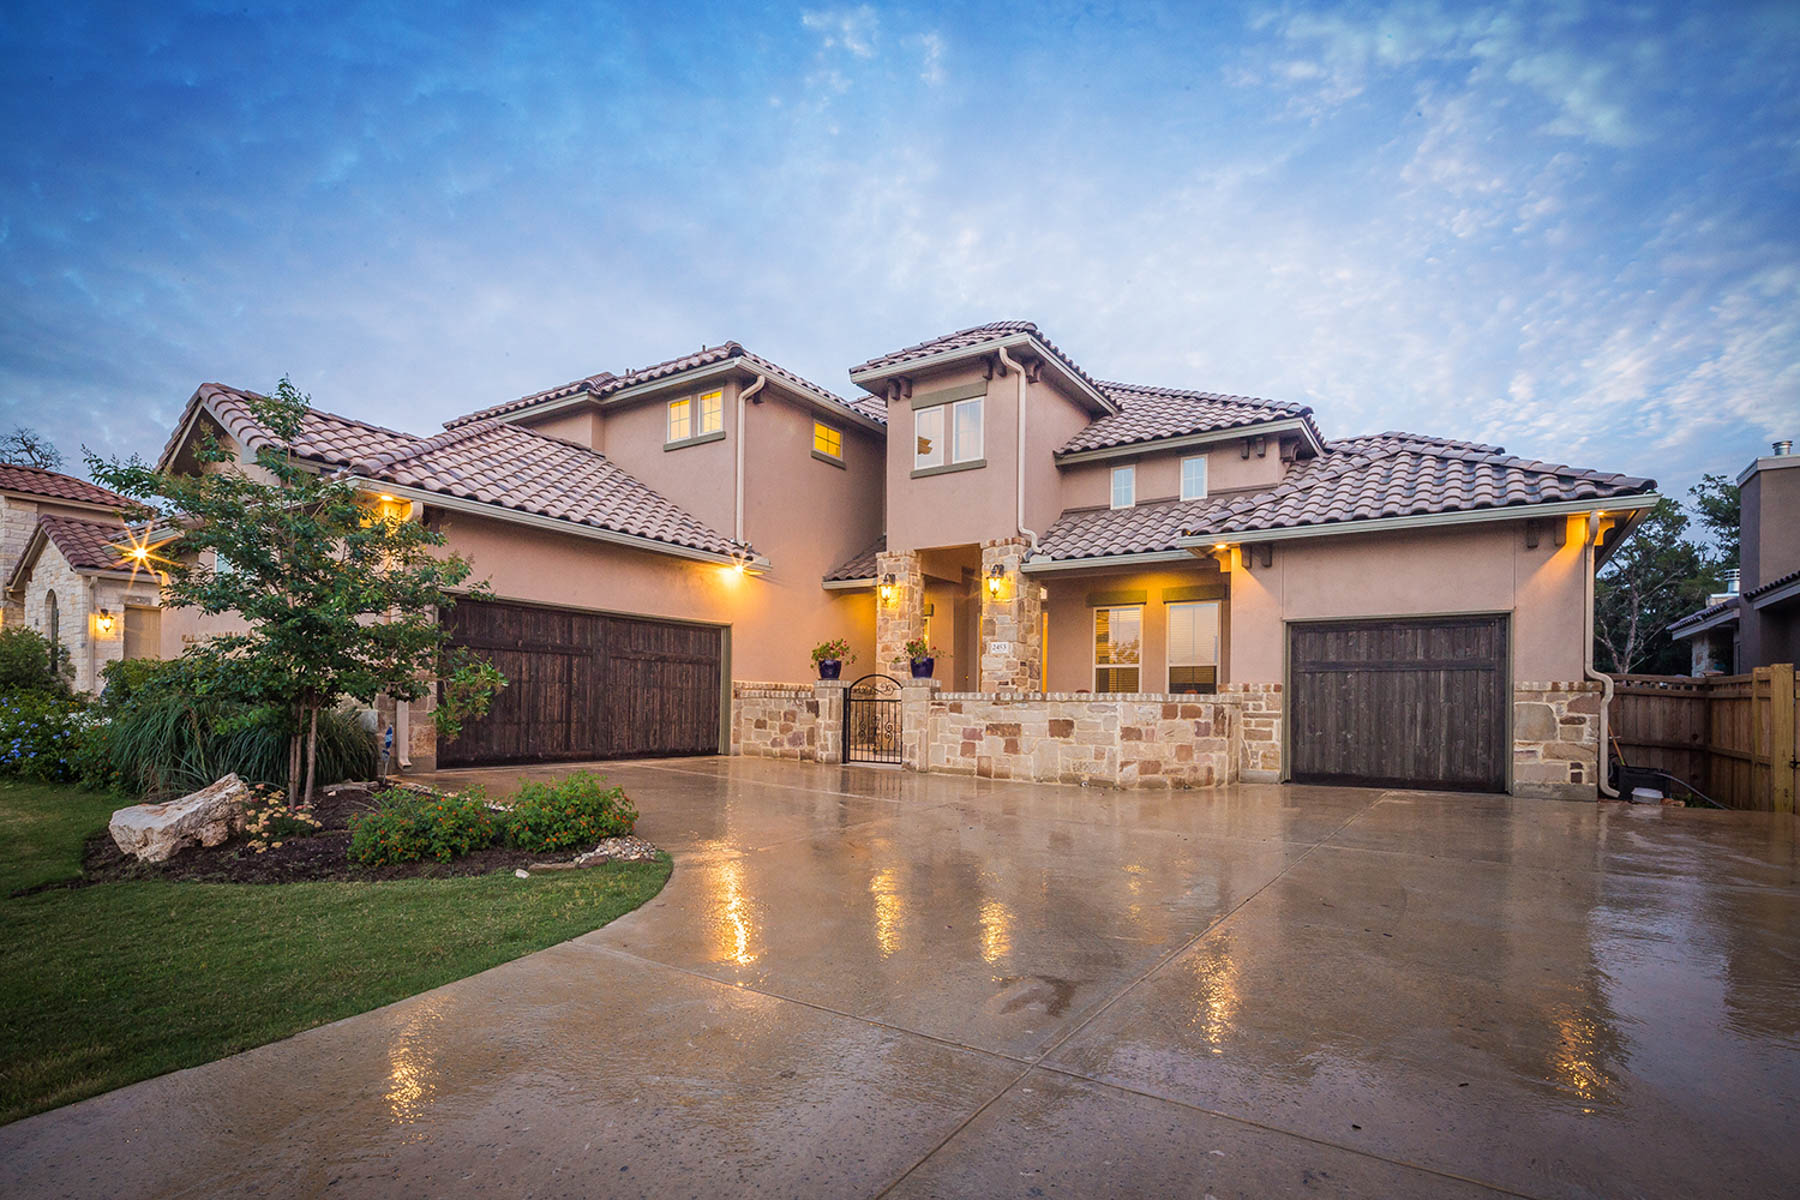 Single Family Home for Sale at Relax in Paradise with This Custom Home 2453 Kookaburra Dr New Braunfels, Texas 78132 United States